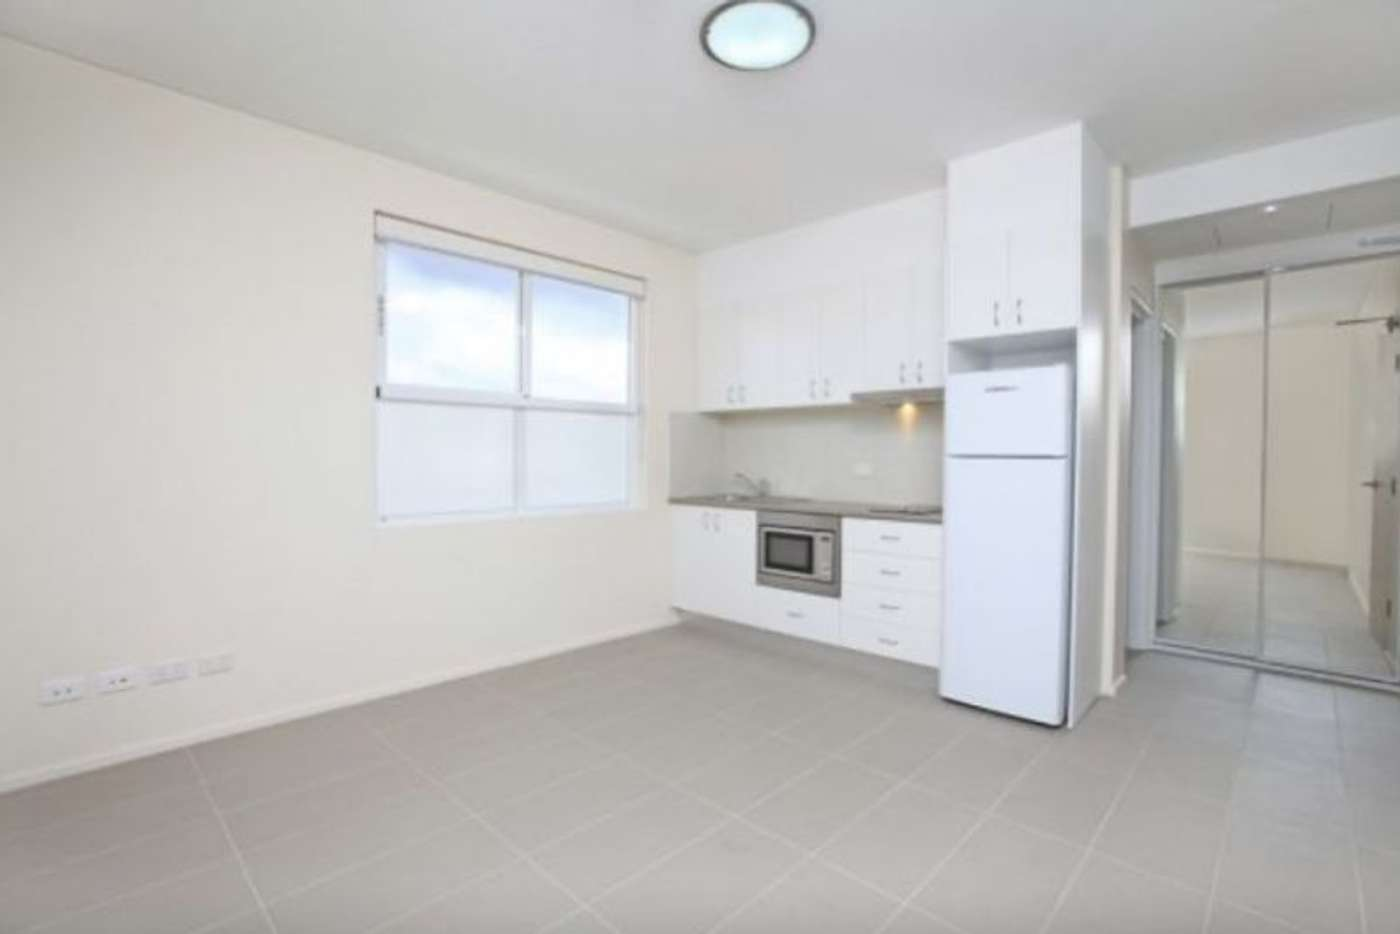 Main view of Homely studio listing, 59 Liverpool Road, Ashfield NSW 2131